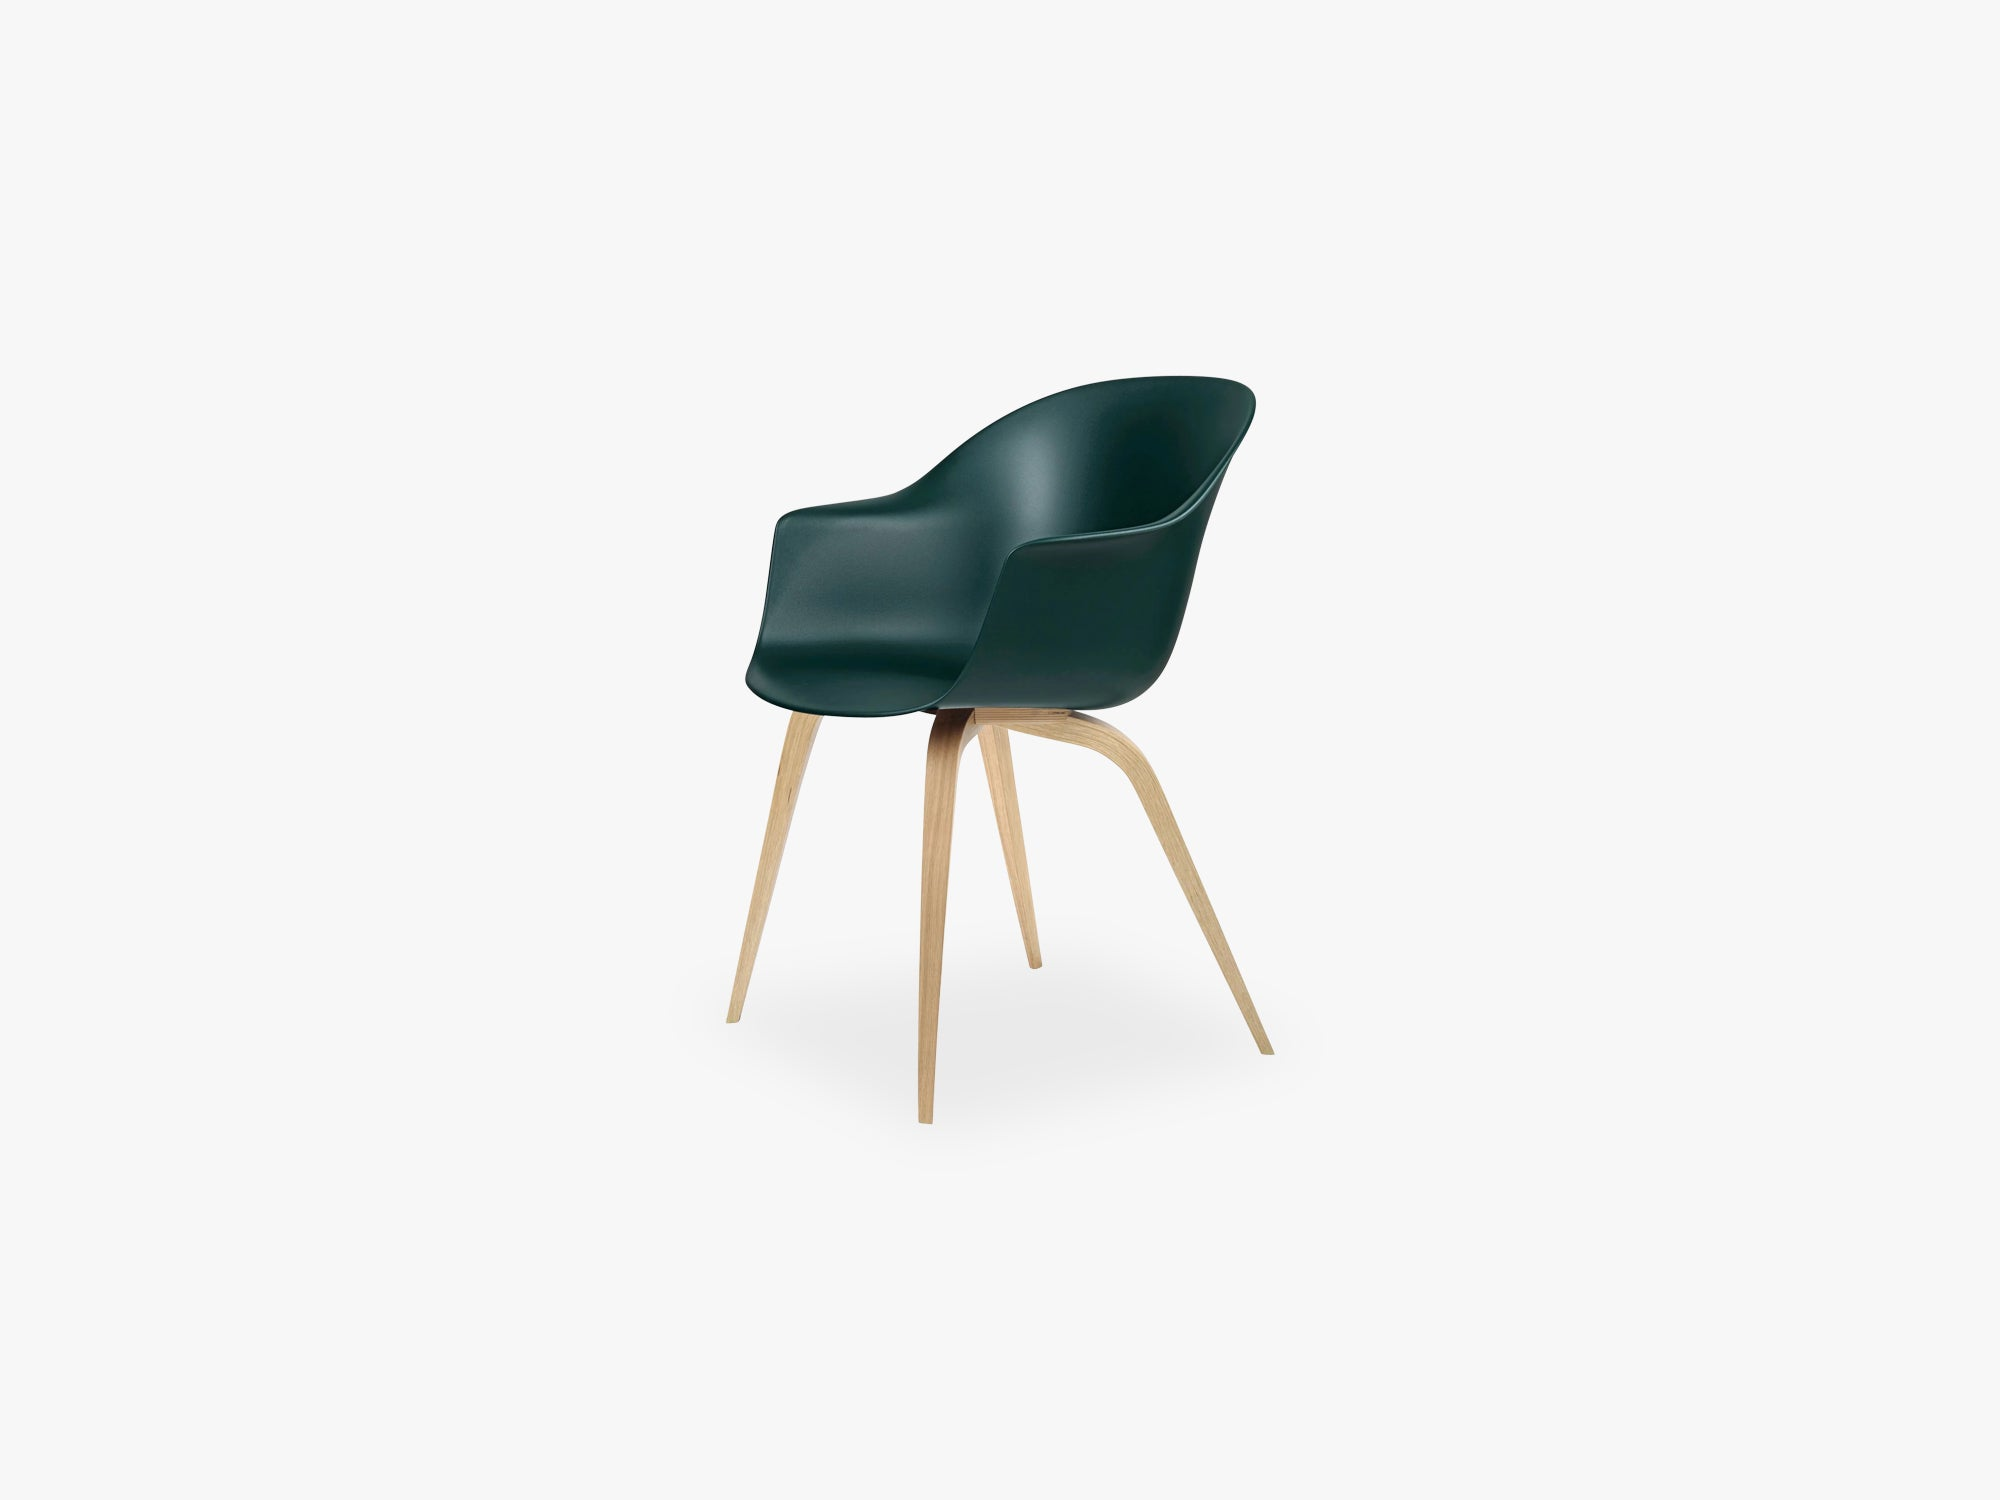 Bat Dining Chair - Skal m Wood base - Oak Semi Matt, Dark Green fra GUBI